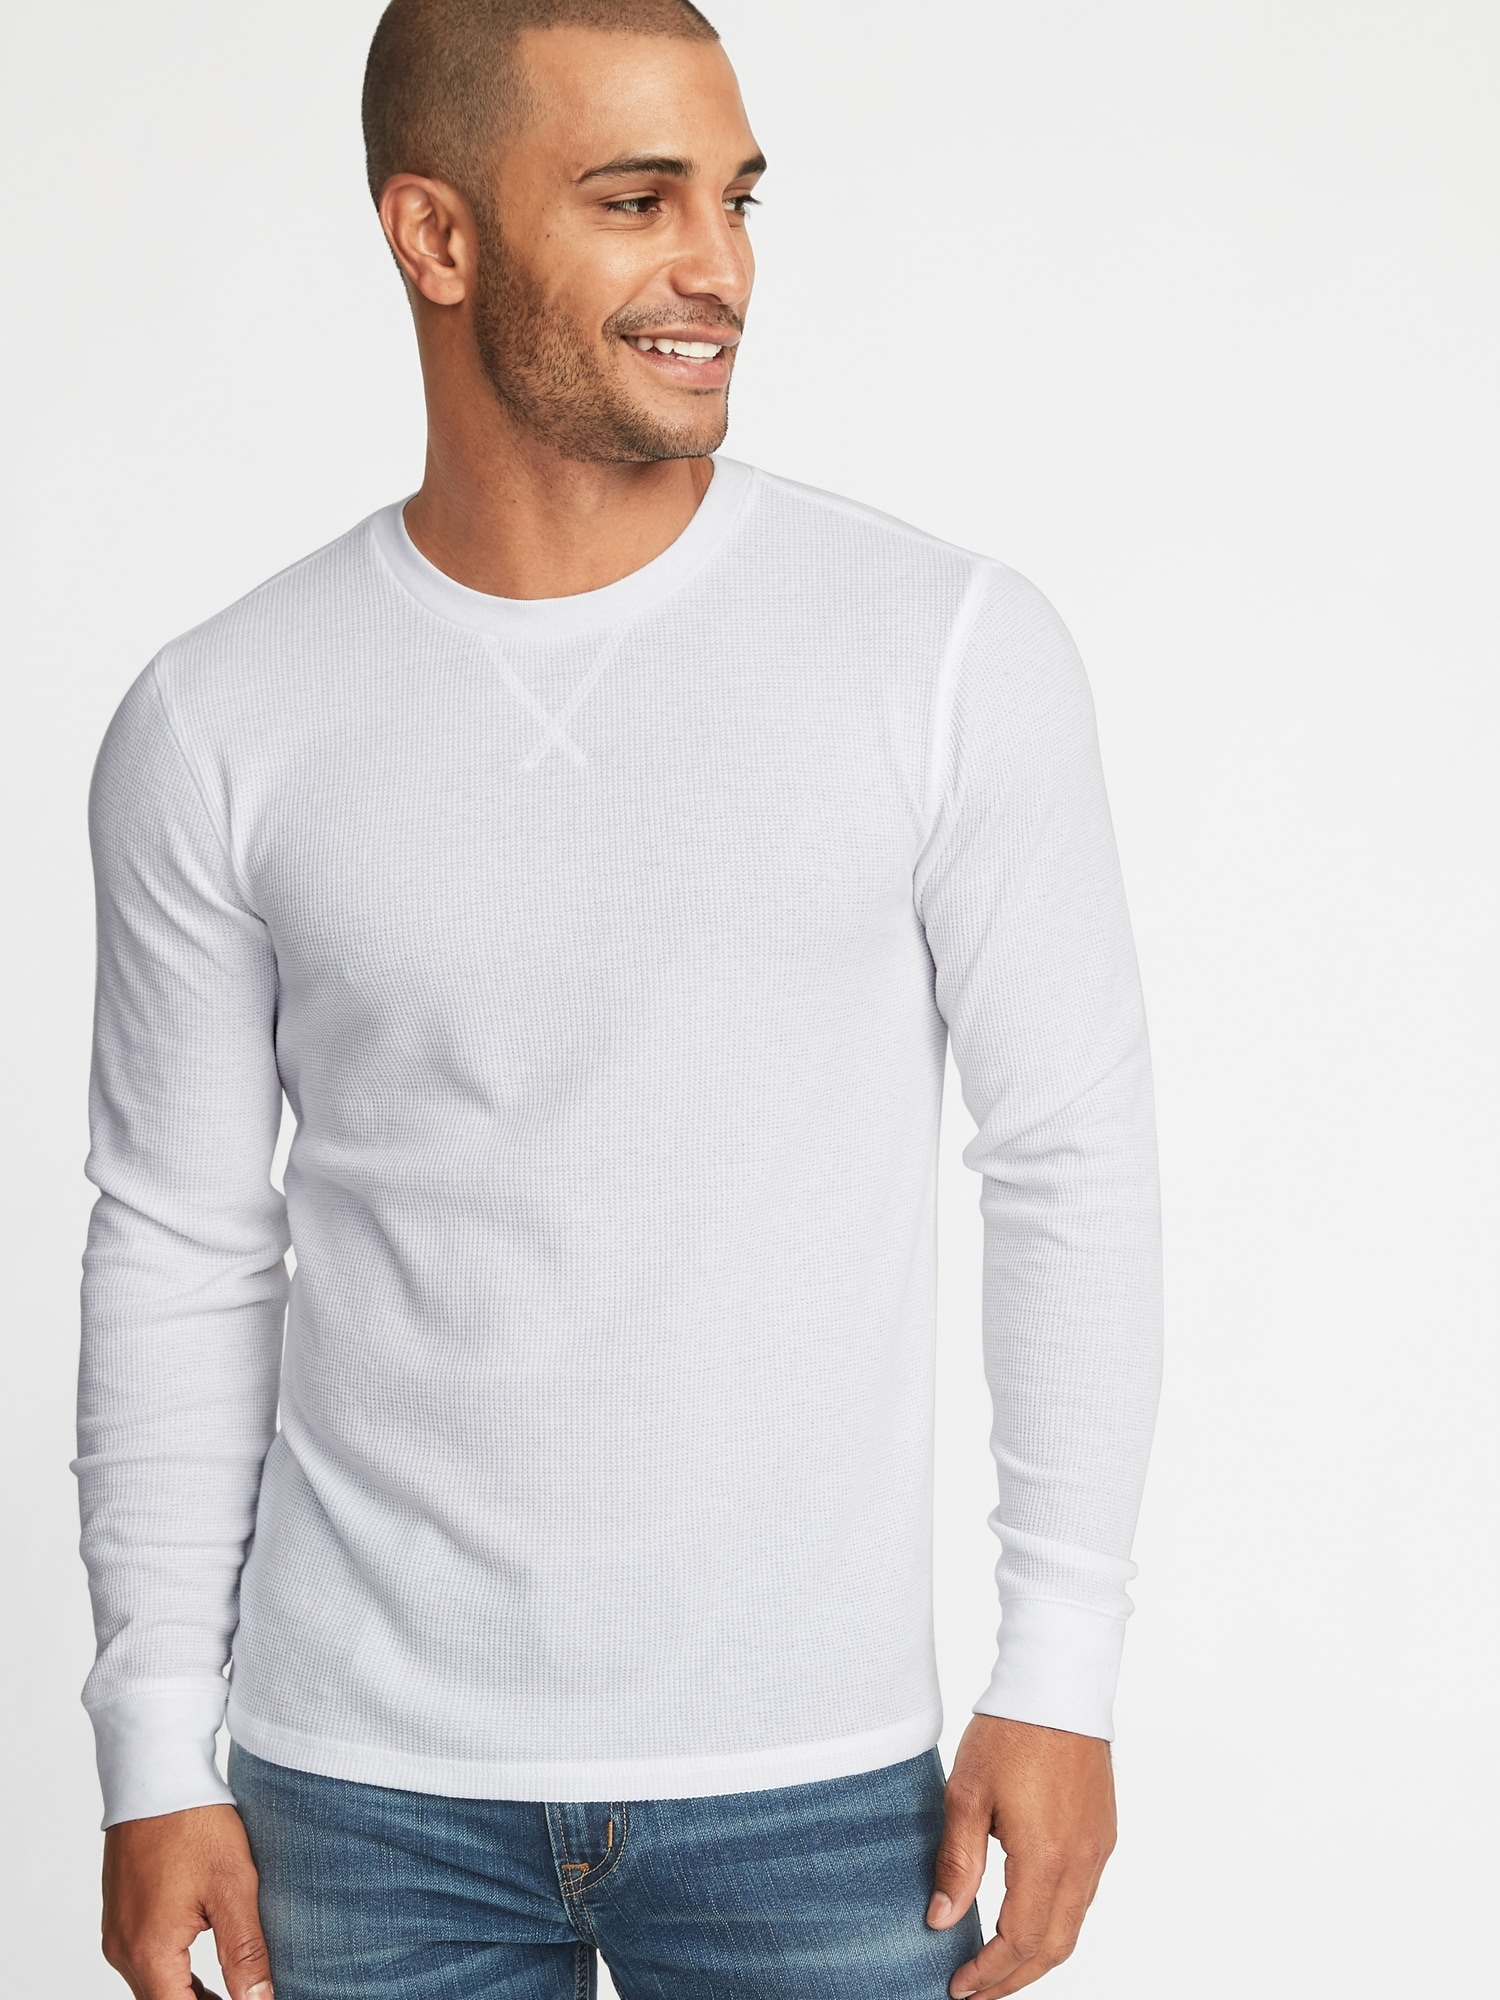 59a1f77d951 Soft-Washed Thermal-Knit Crew-Neck Tee for Men